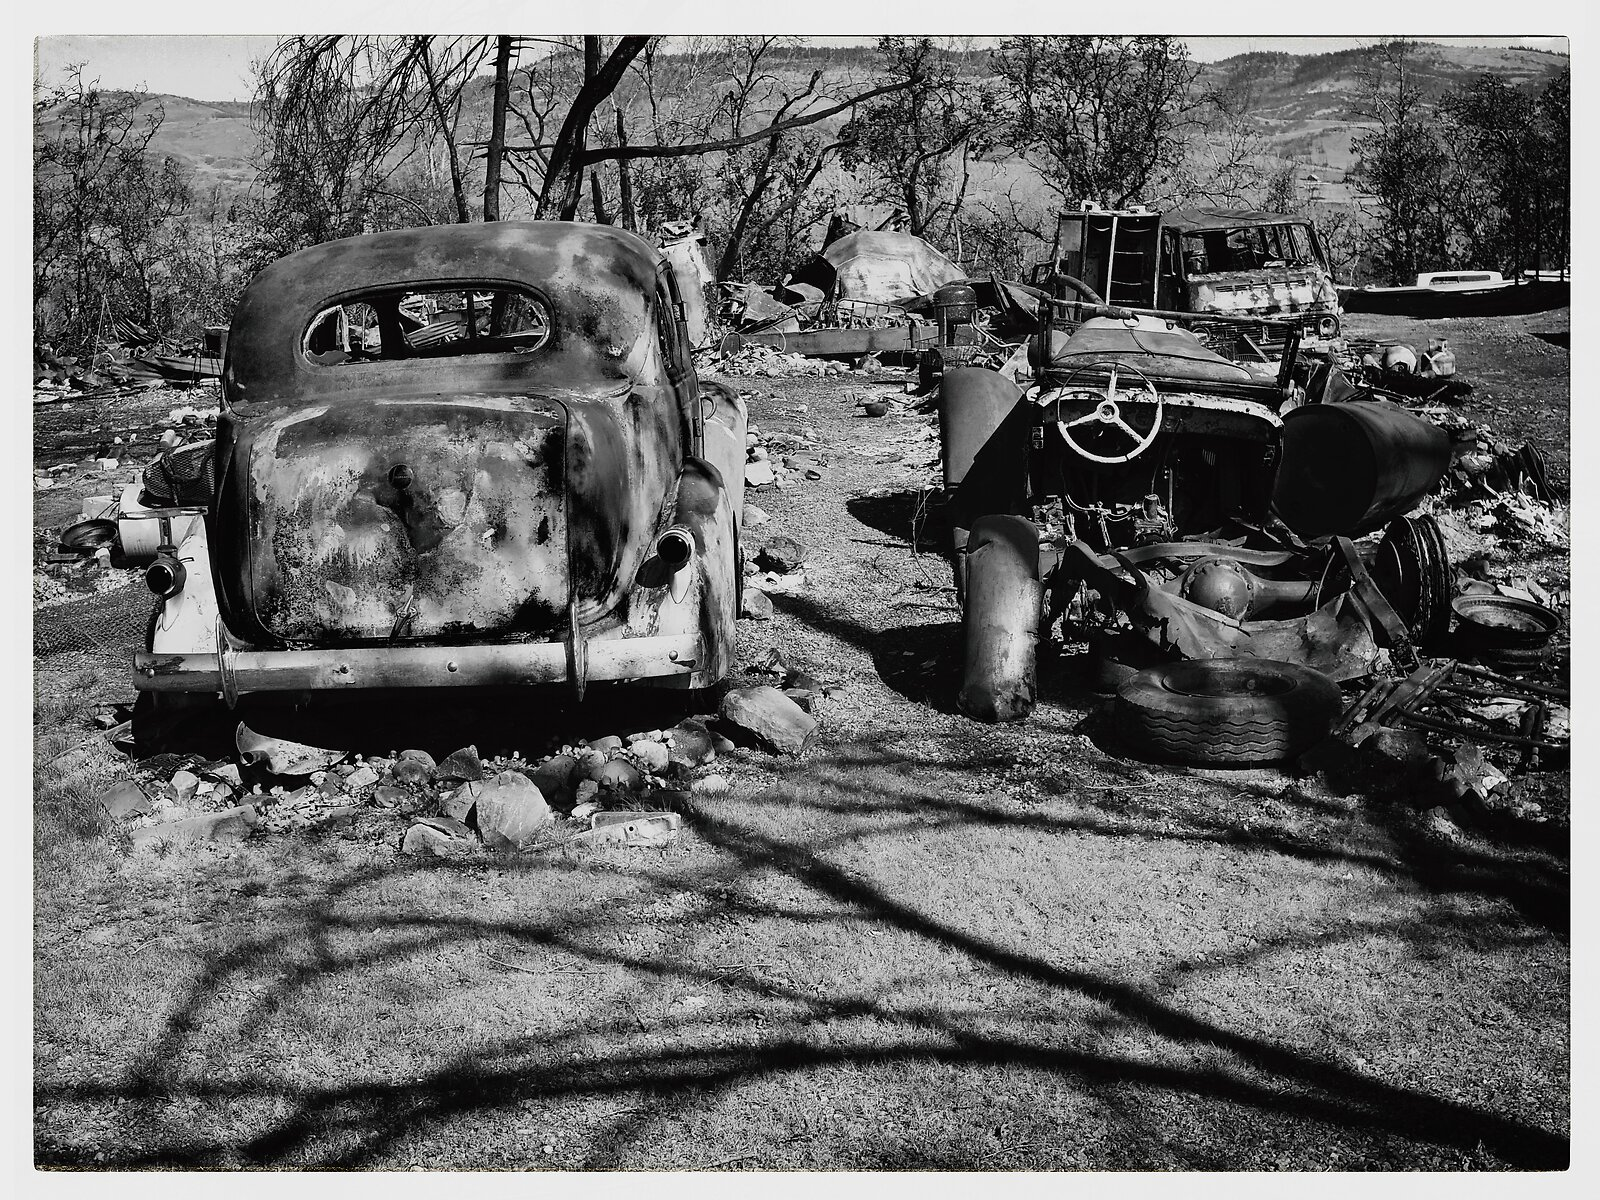 Q7_Mar2_21_two_burned_cars(01).jpg